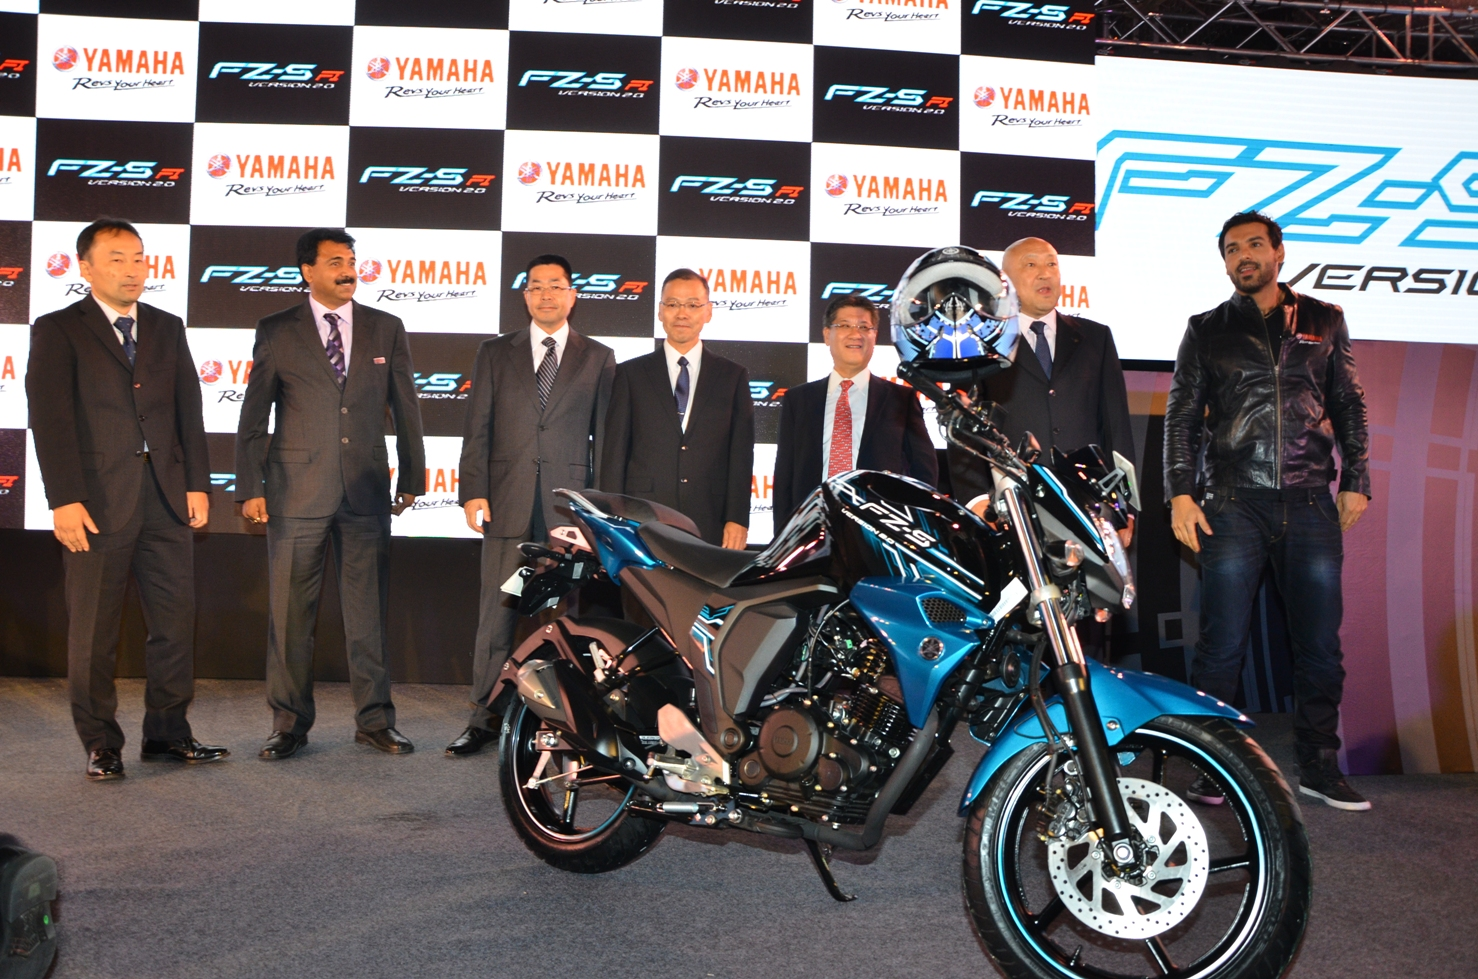 Yamaha Motor India launches FZ 2.0 & FZS 2.0